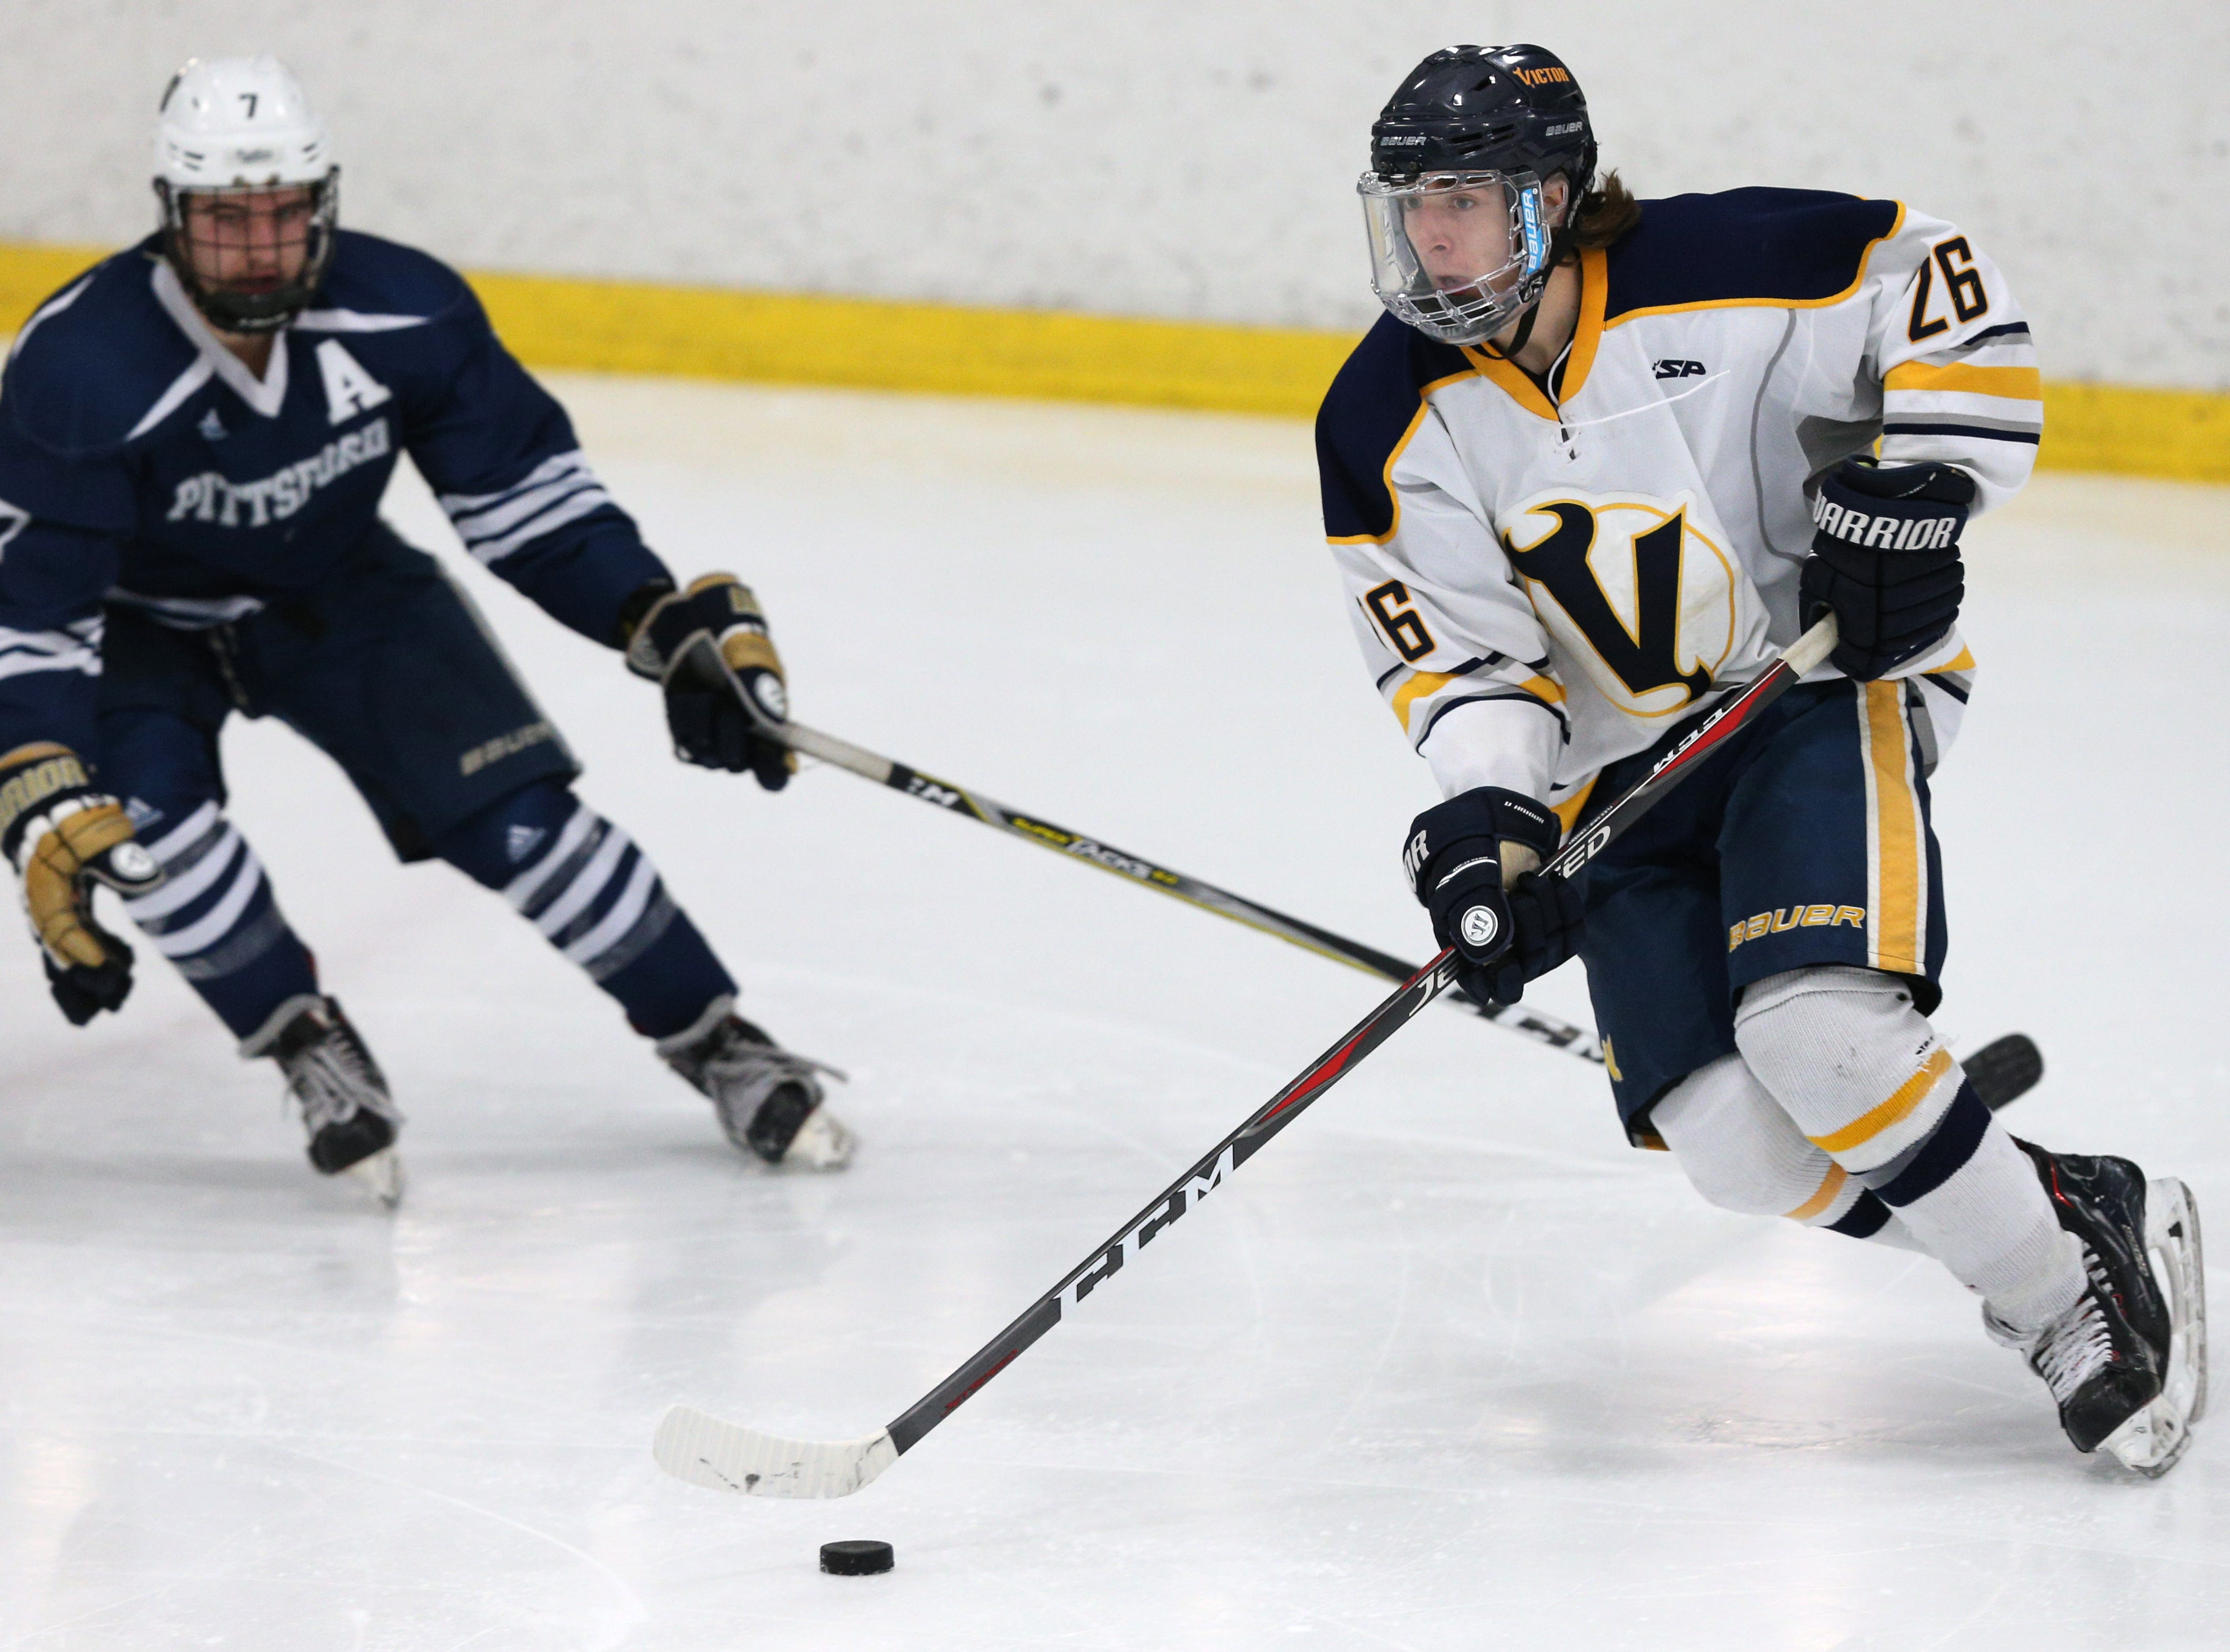 Victor #26 James Tilley against Pittsford.